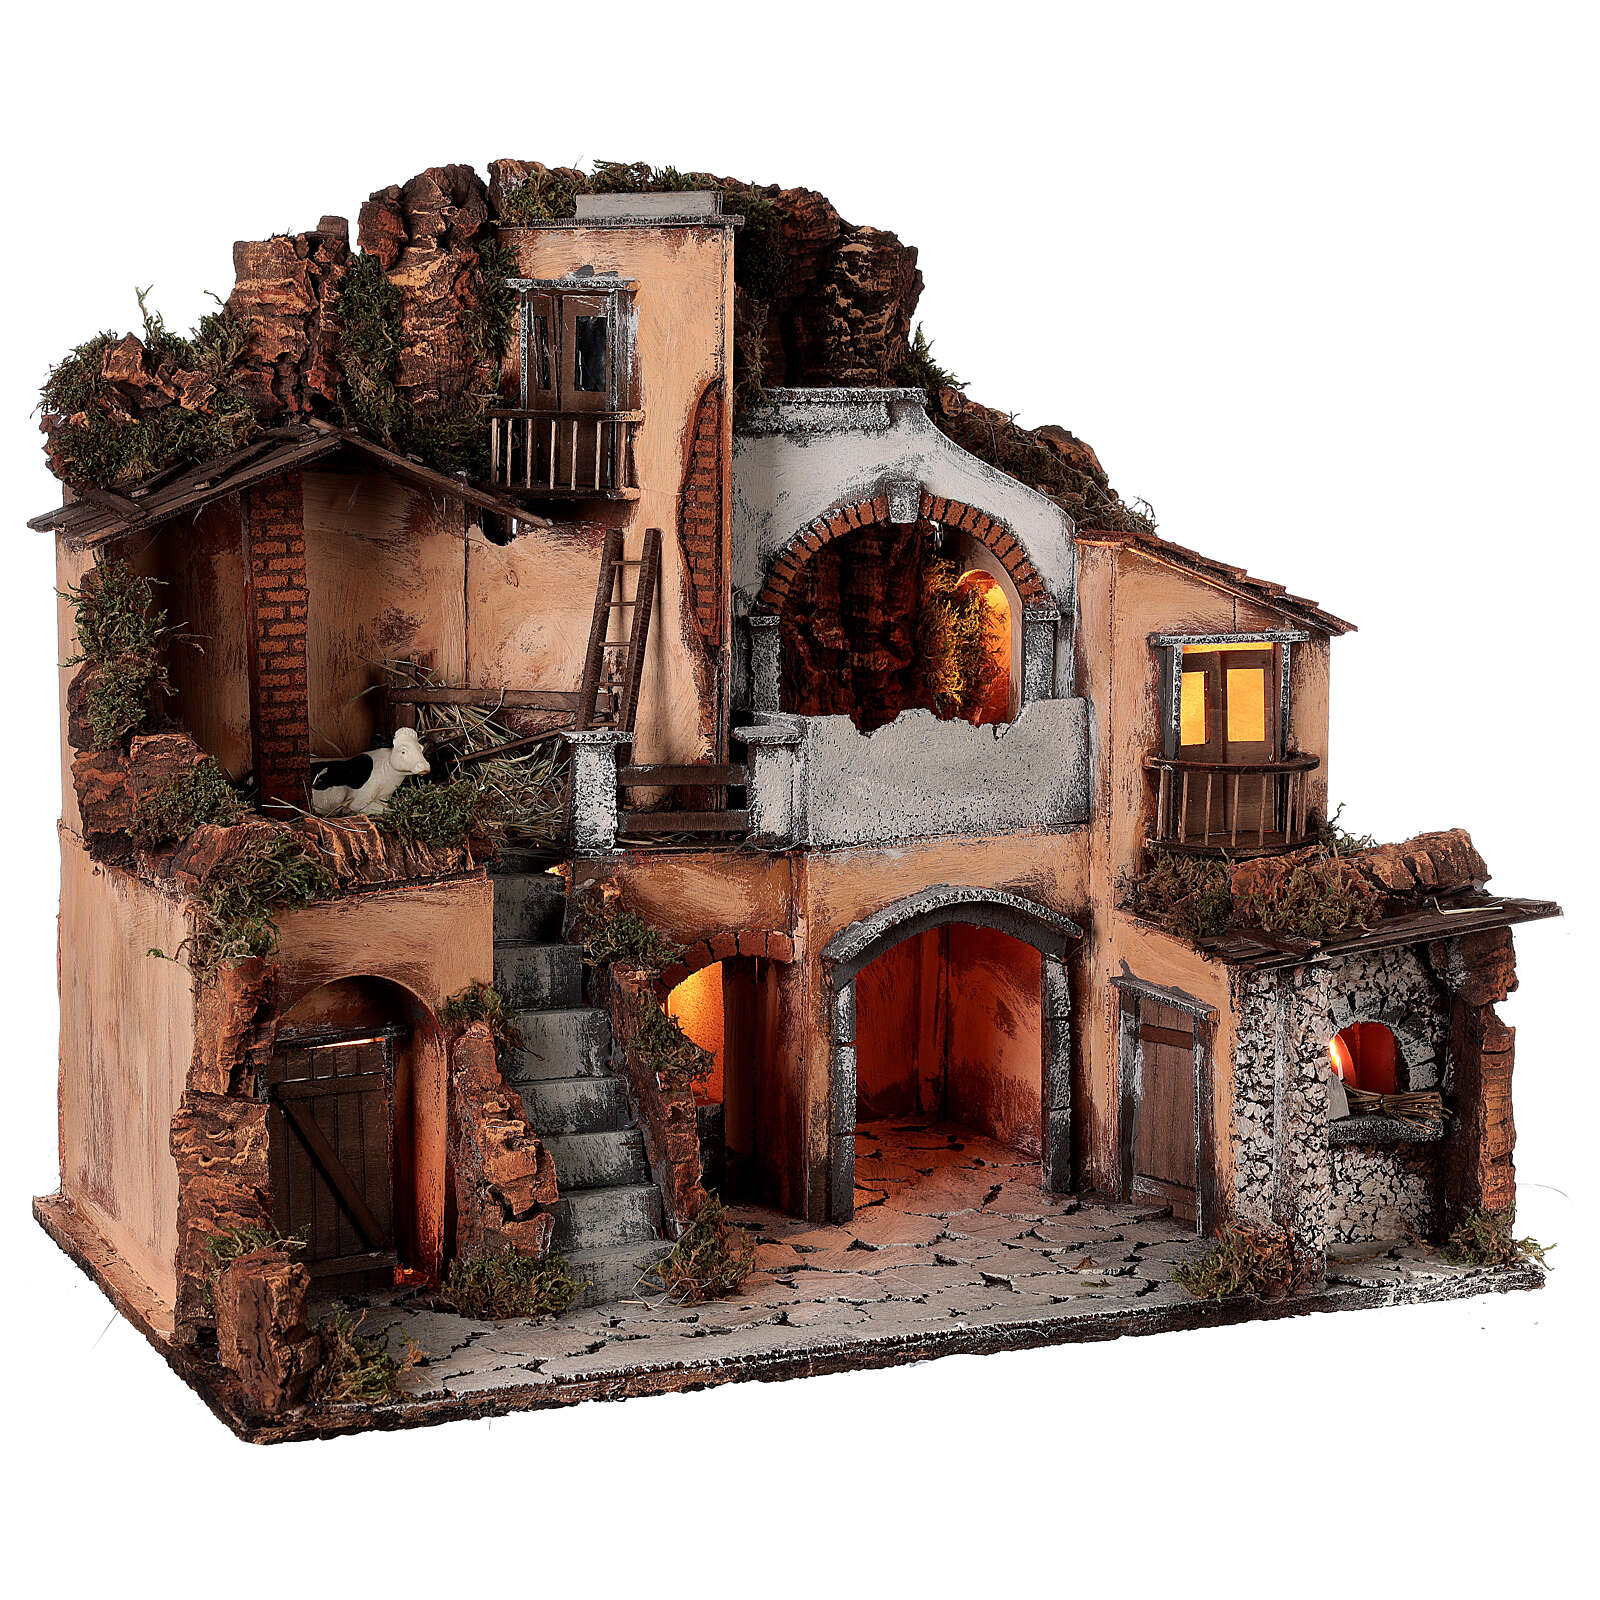 Classic nativity village oven stable cow 10 cm Neapolitan nativity 50x60x40 4